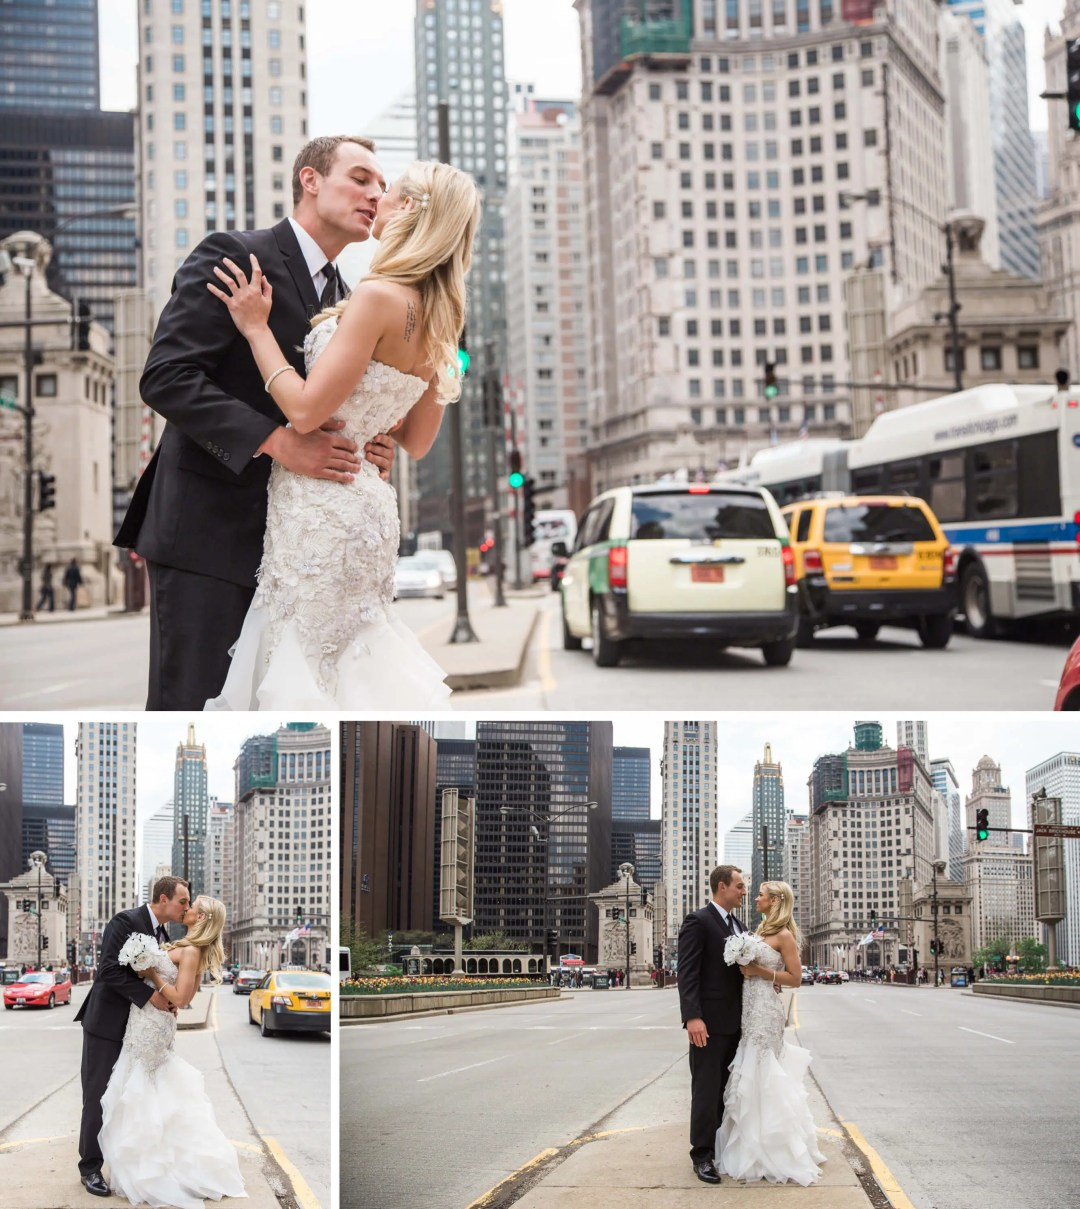 Wedding couple in streets of downtown Chicago _ Brighton Wedding Photographer